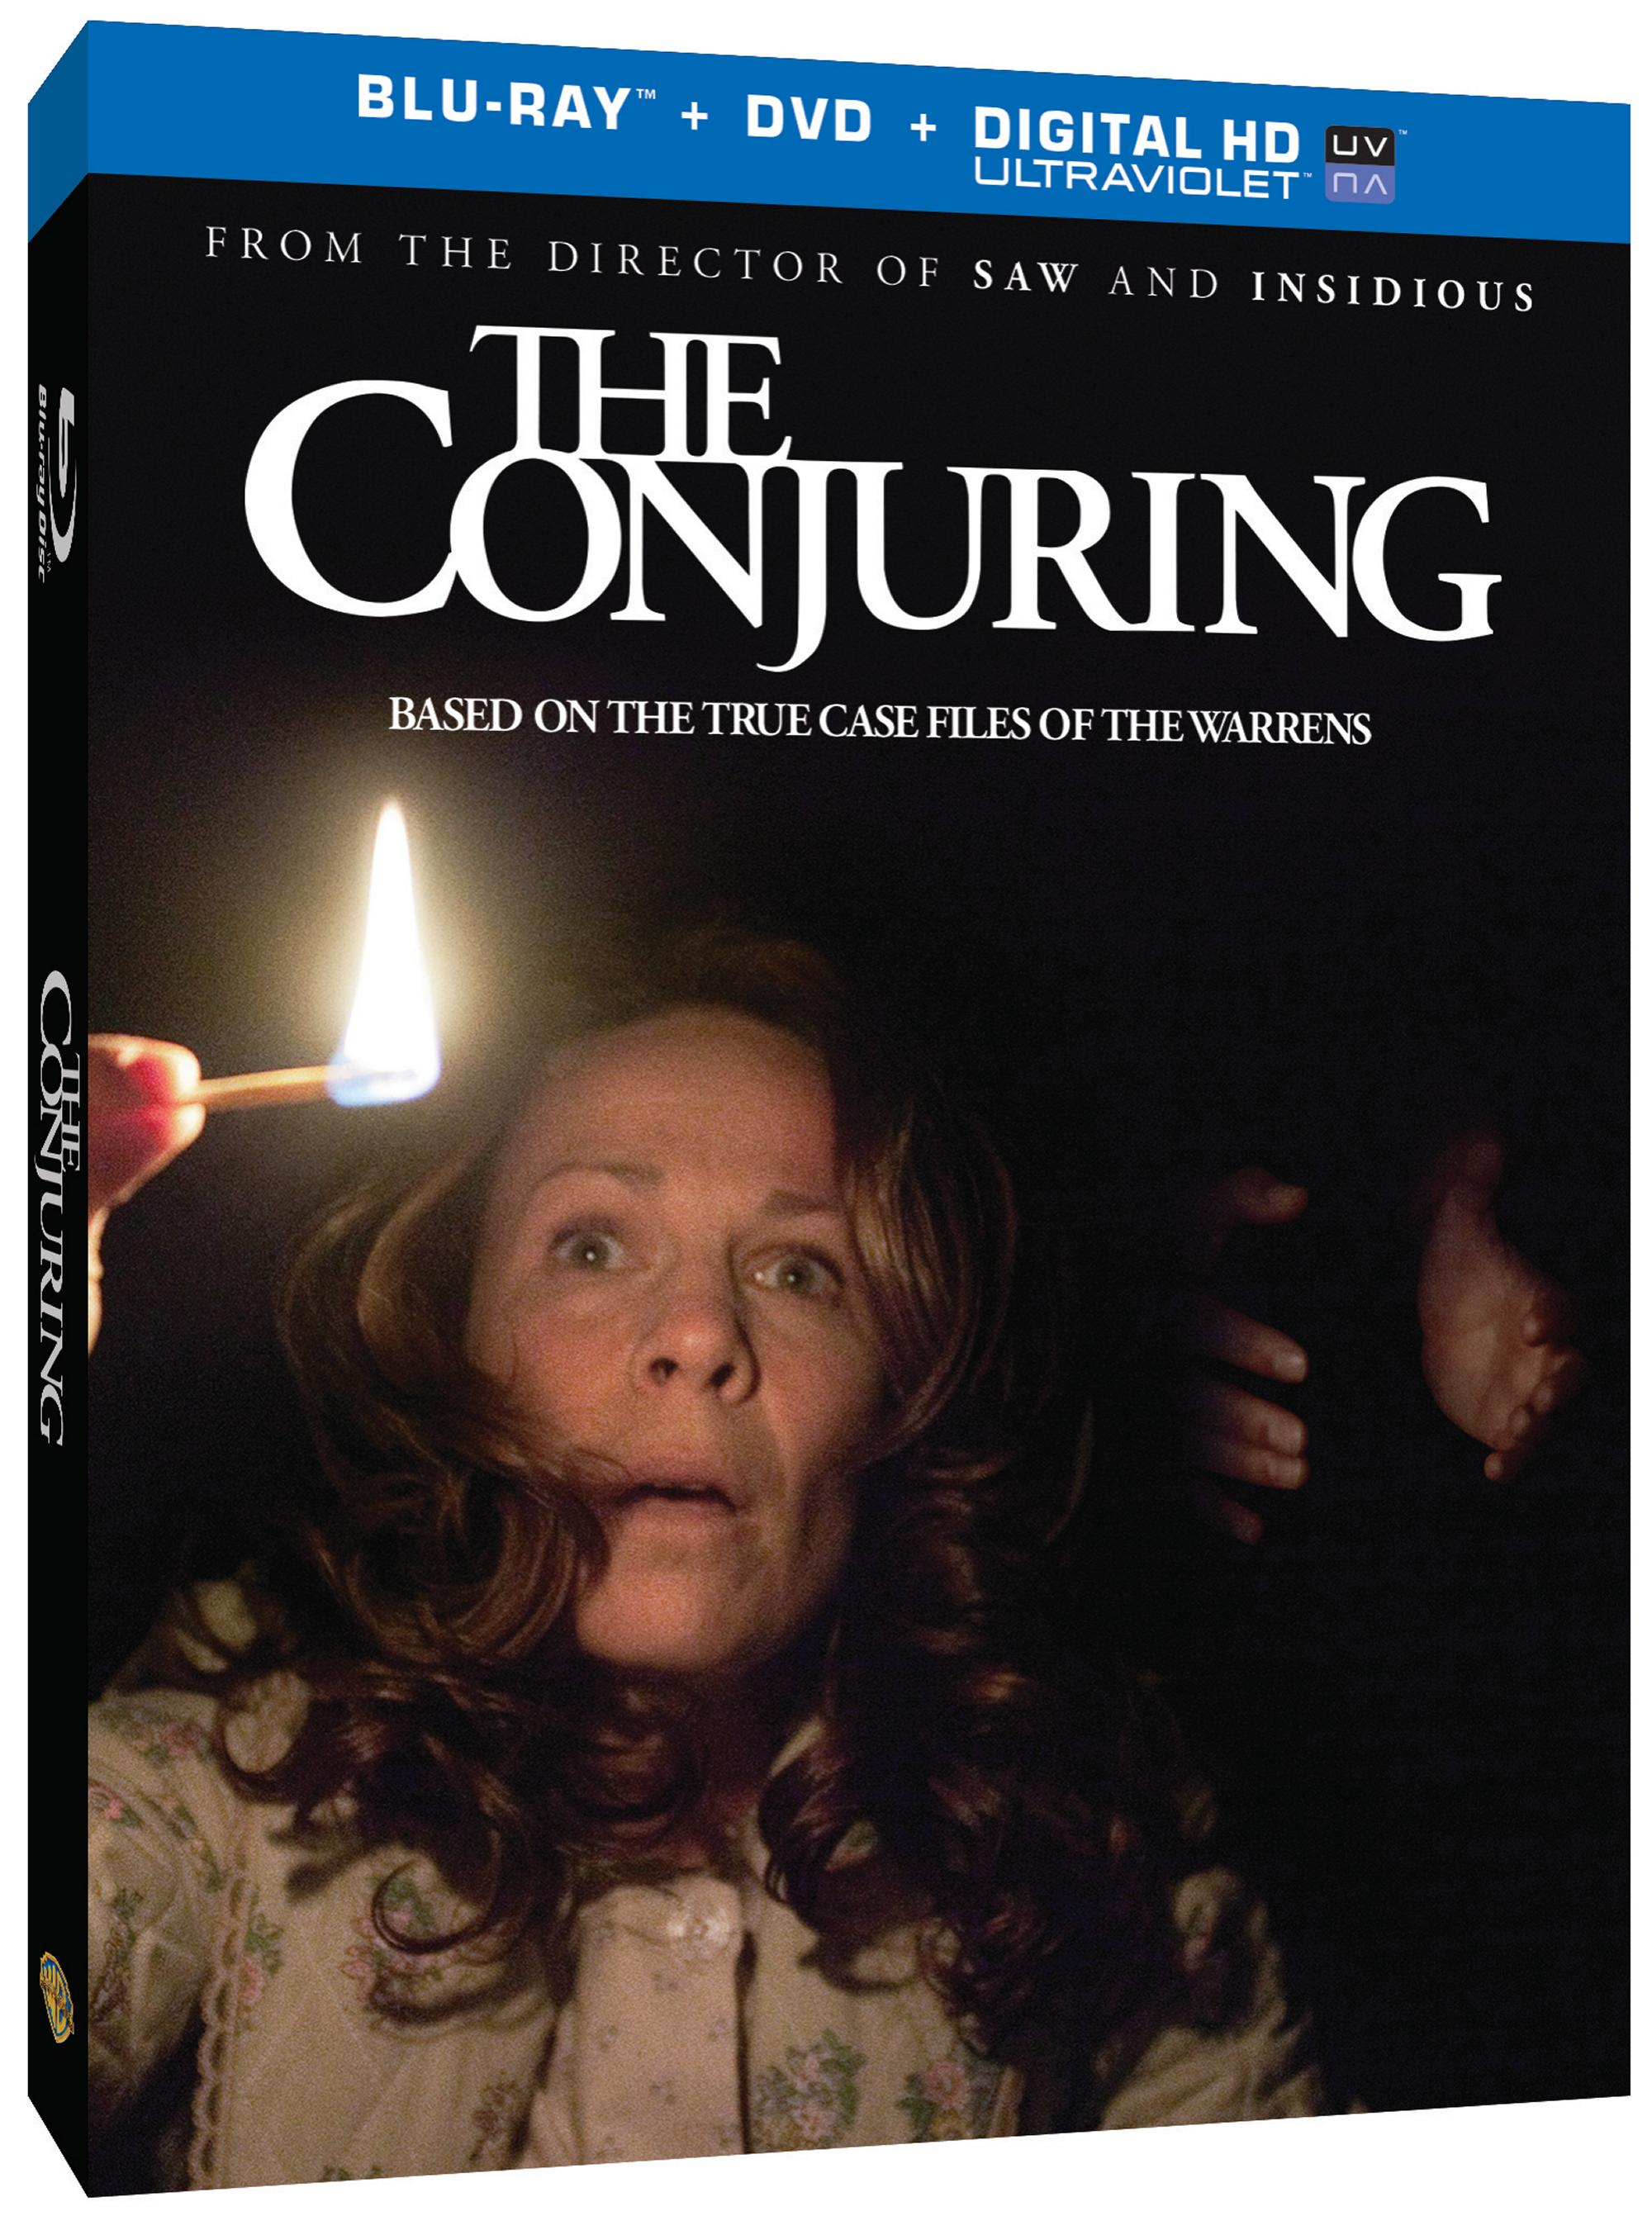 the conjuring full mp4 download